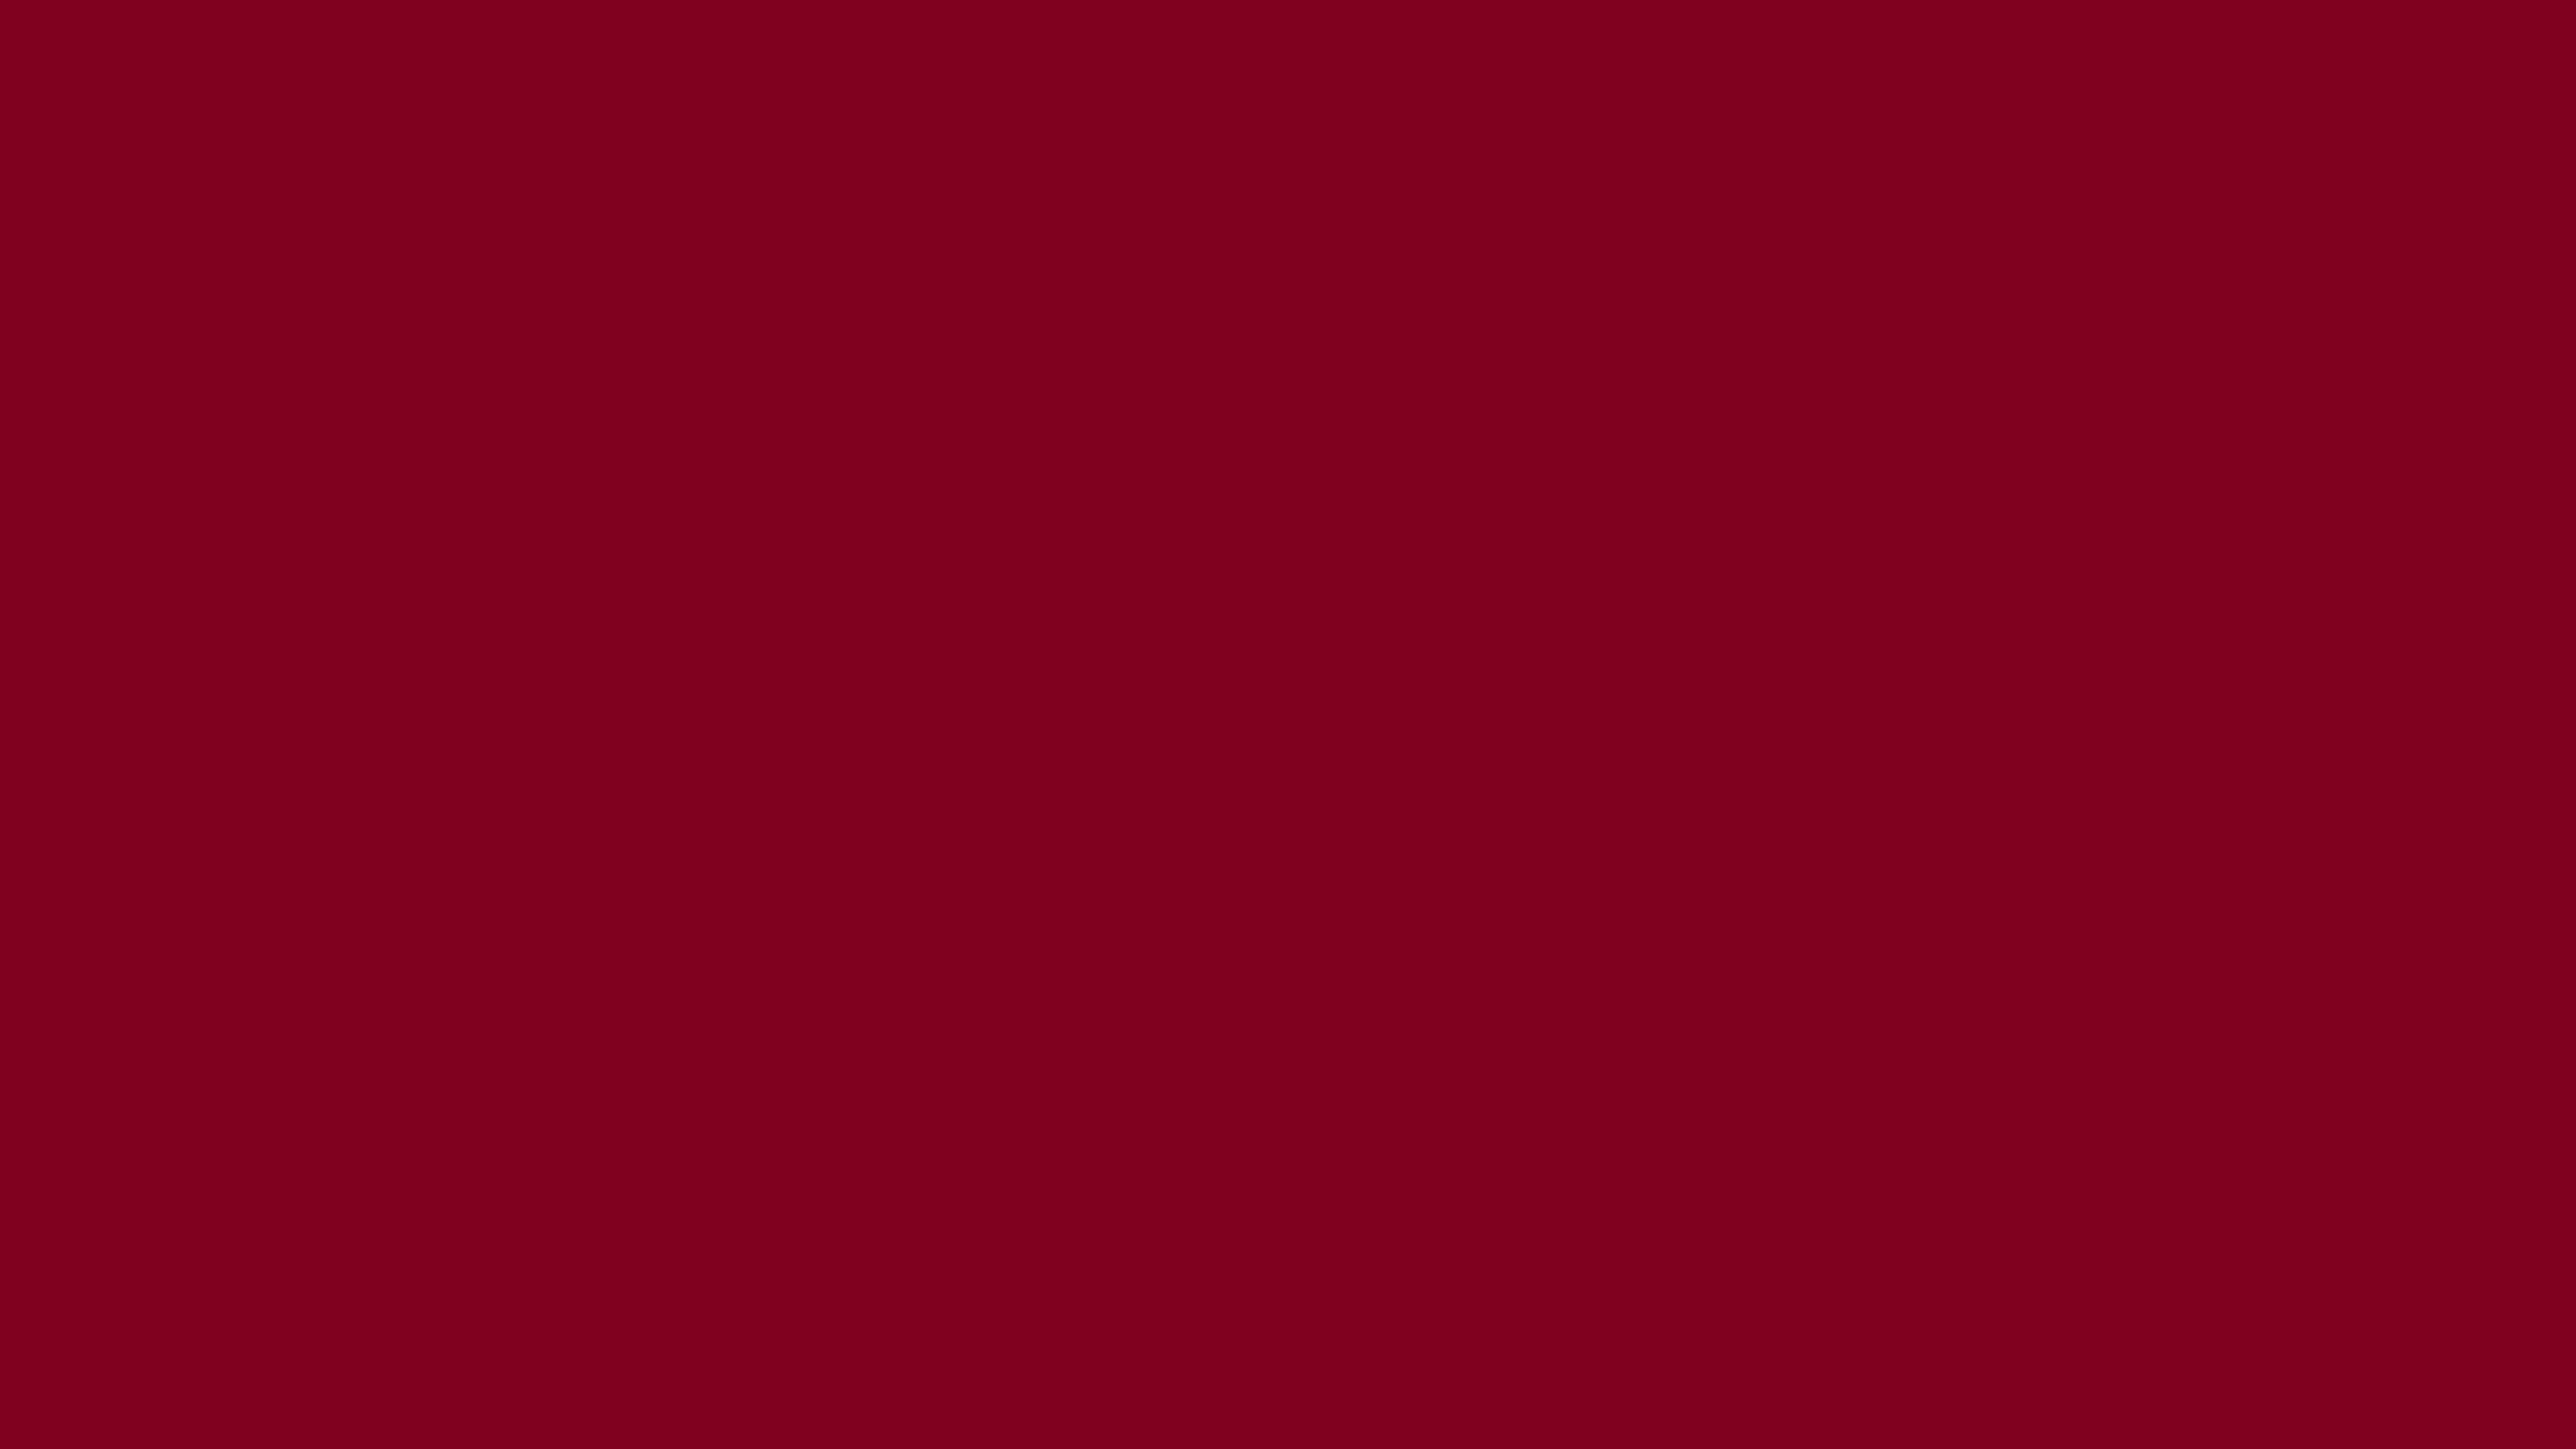 5120x2880 Burgundy Solid Color Background